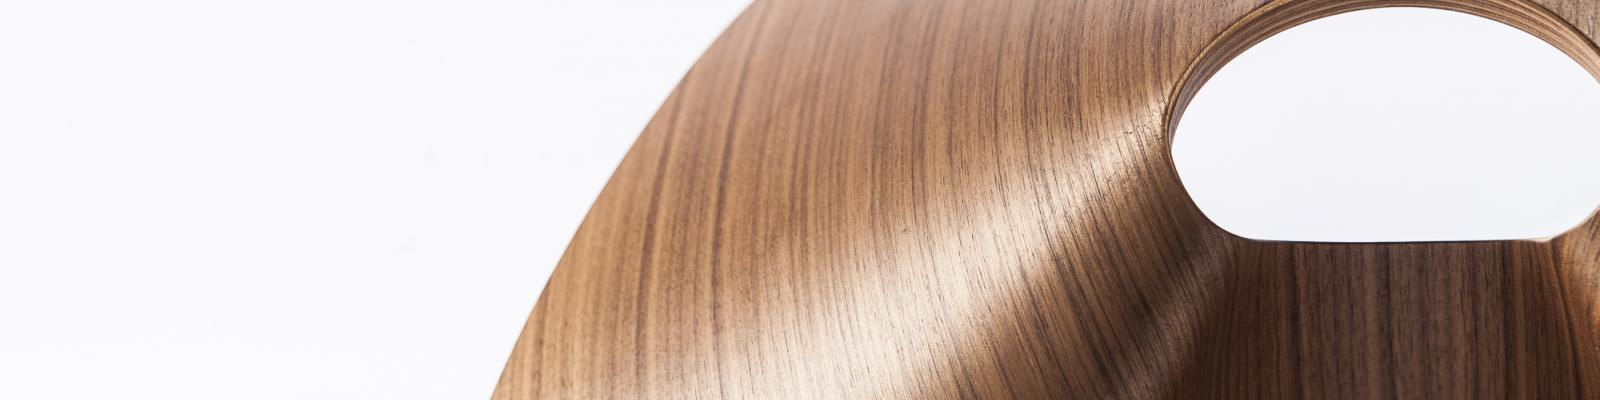 molded wood formholz contreplaqué cintré gebogenes Sperrholz curved plywood gebogen multiplex